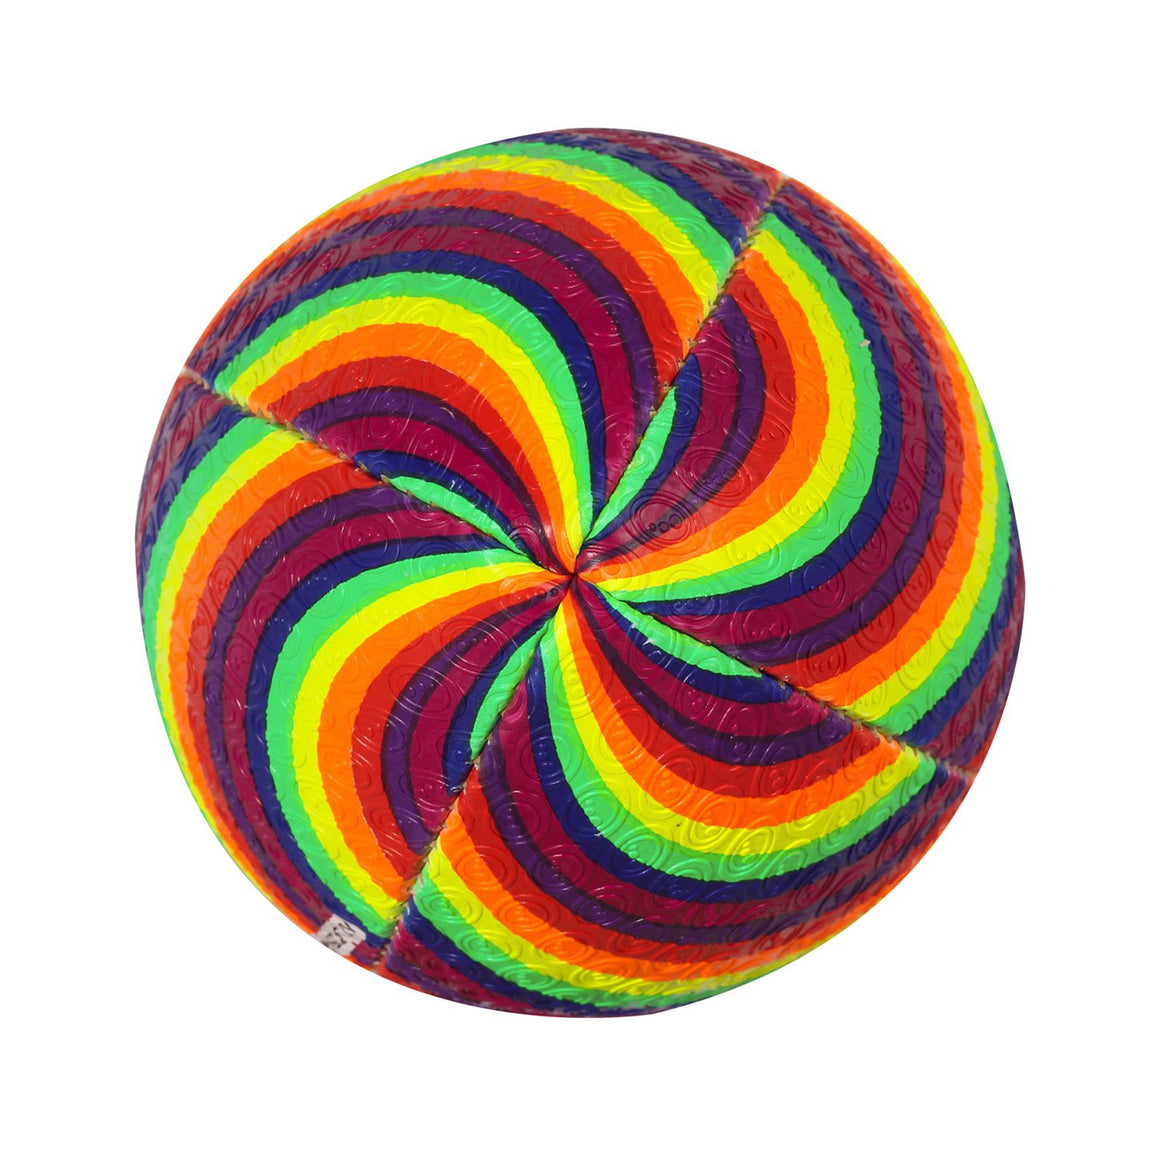 Rainbow Twister Rugby Ball